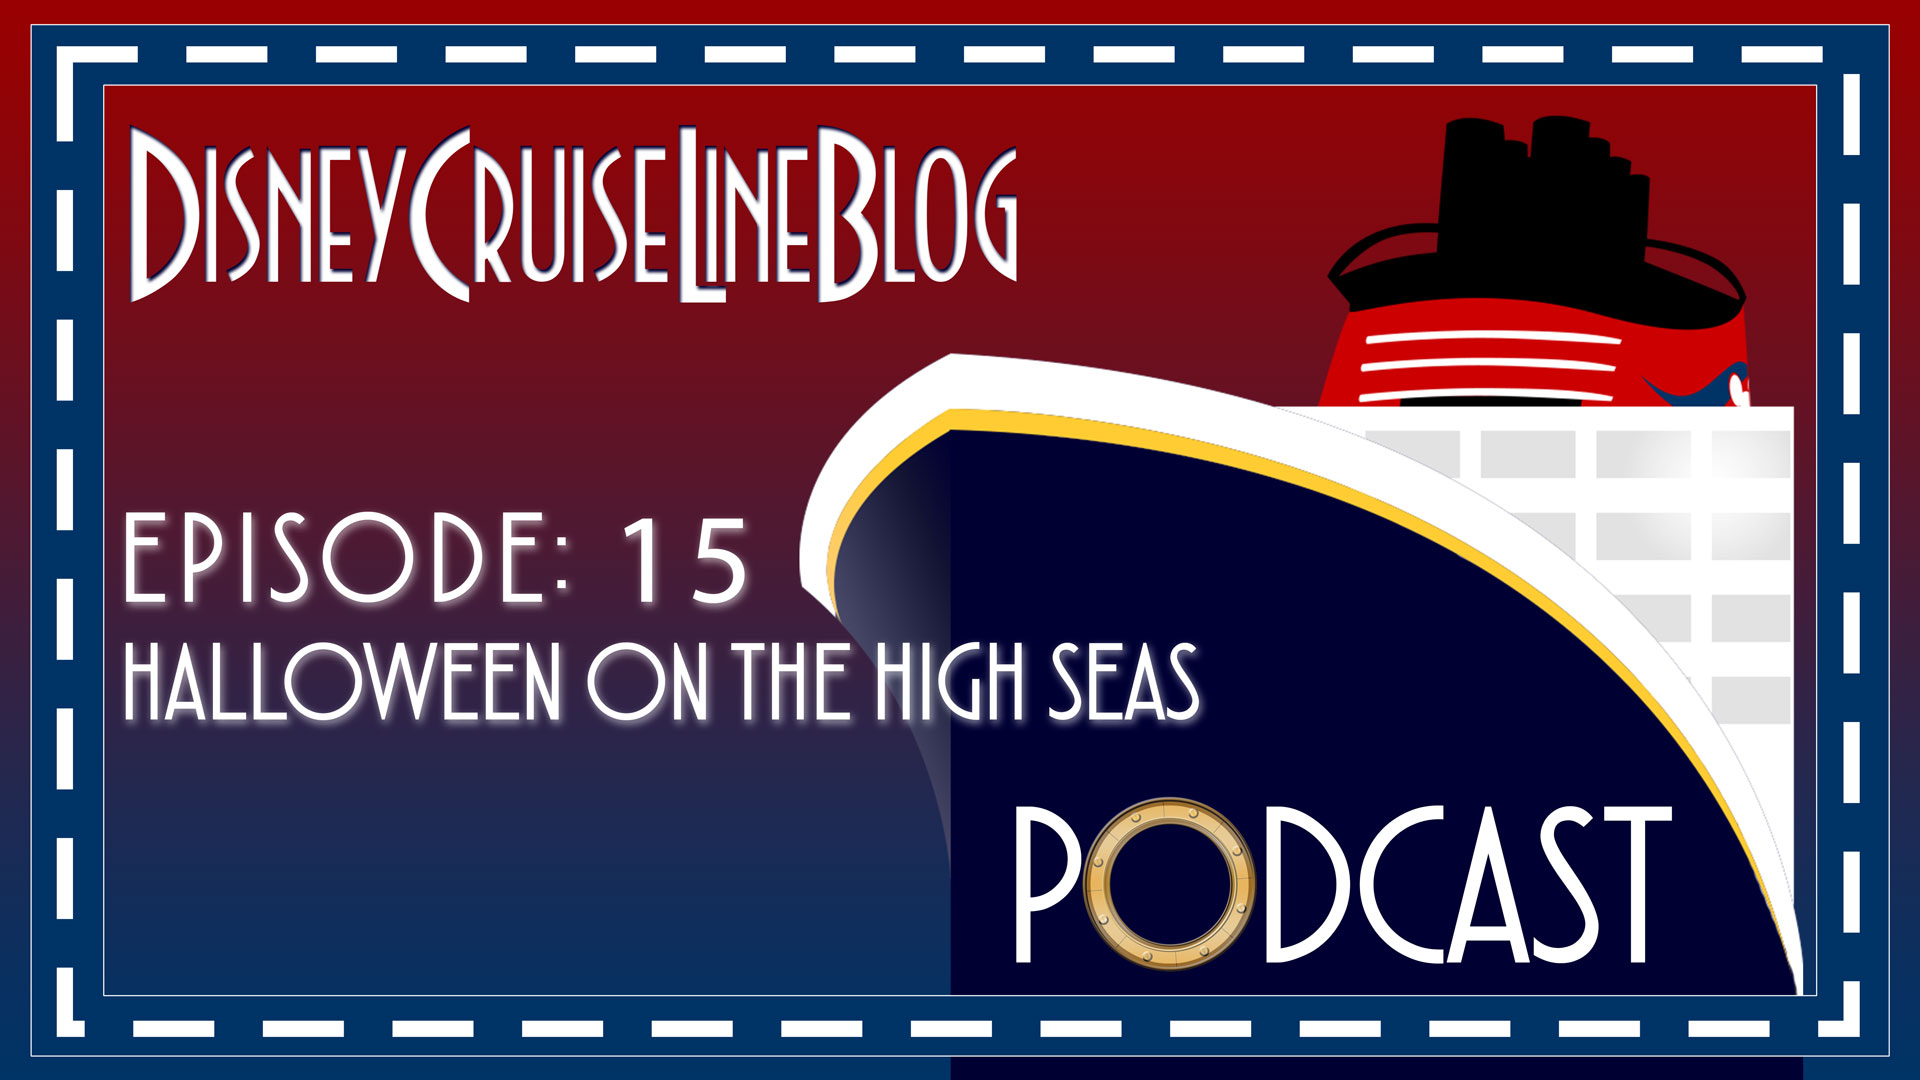 DCL Blog Podcast Episode 15 Halloween On The High Seas